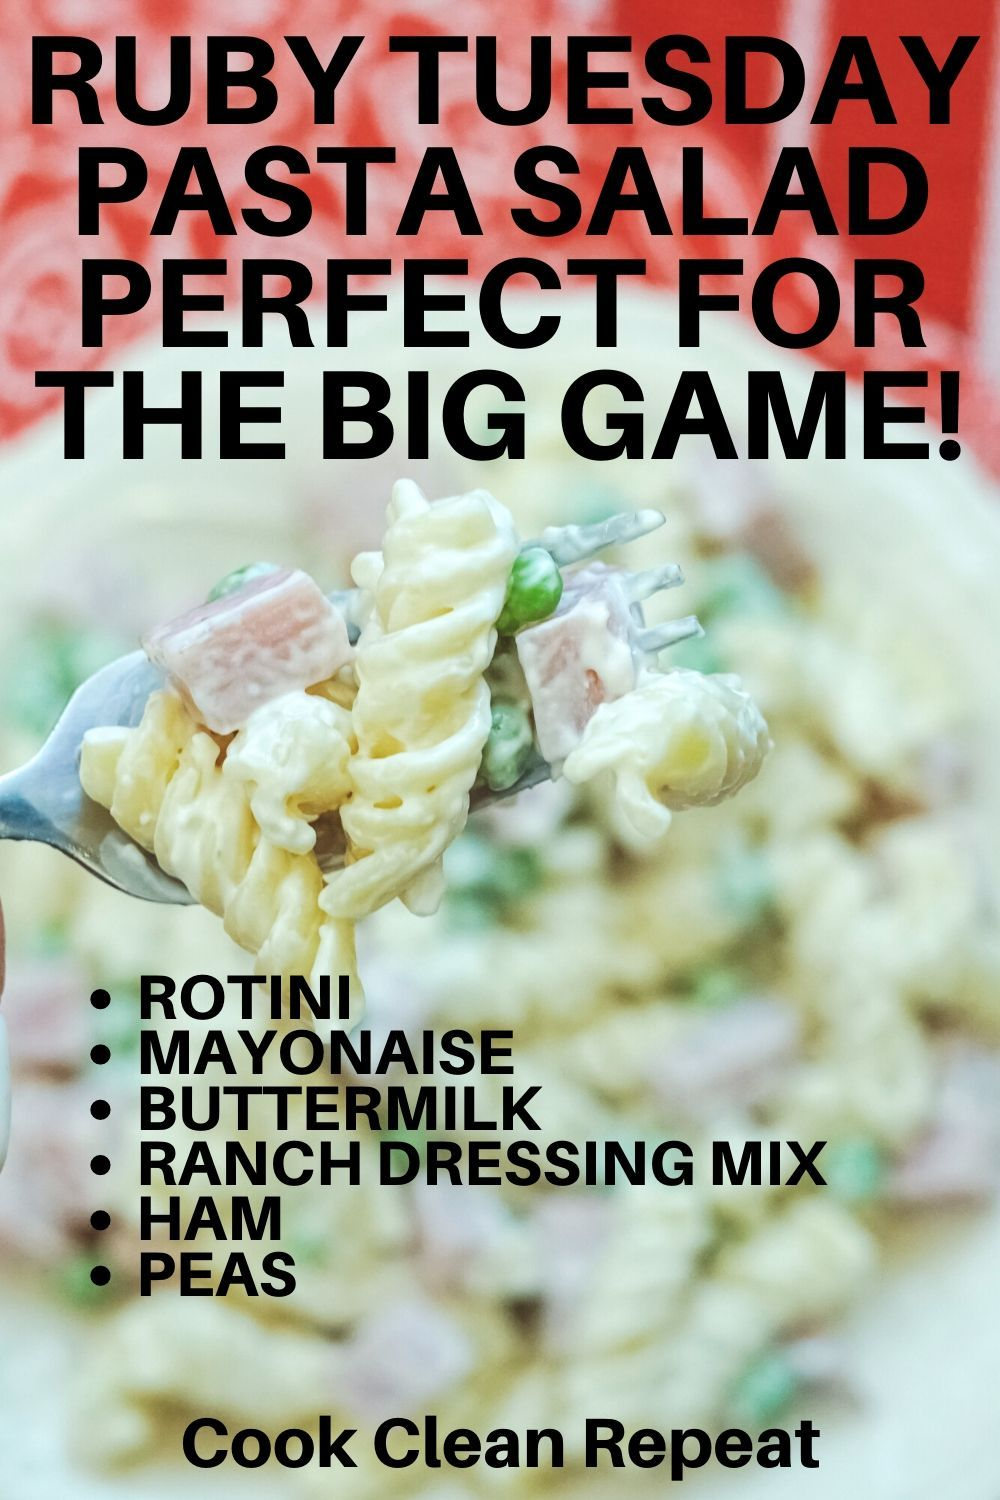 Copycat ruby tuesday pasta salad is a whole meal in a big